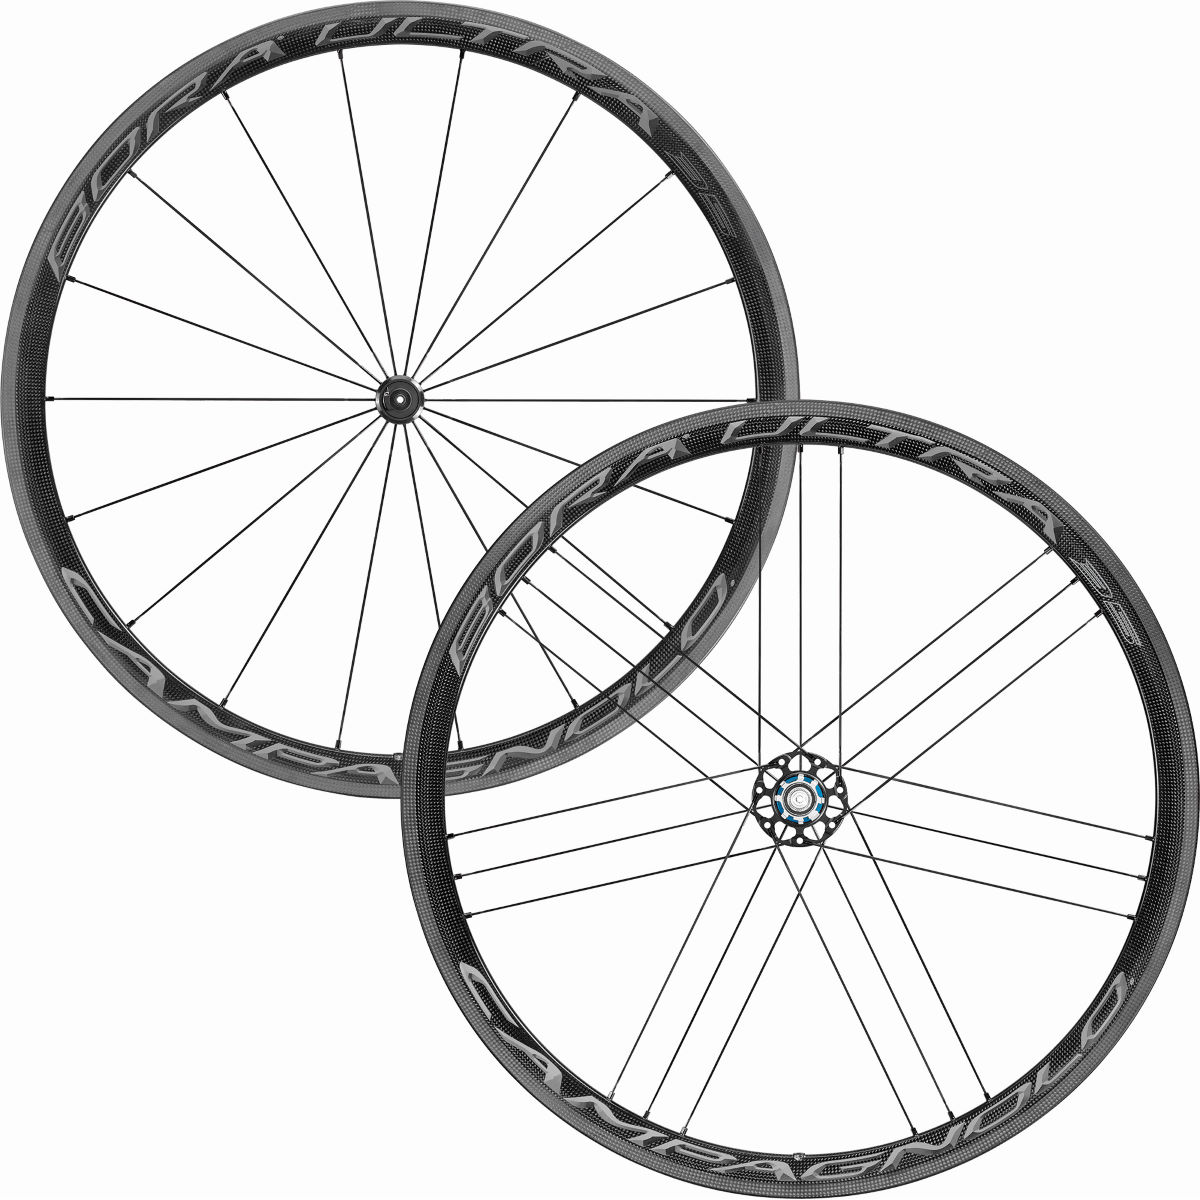 Paire de roues Campagnolo Bora Ultra 35 (2018) - 700c Campagnolo Dark Label Roues performance